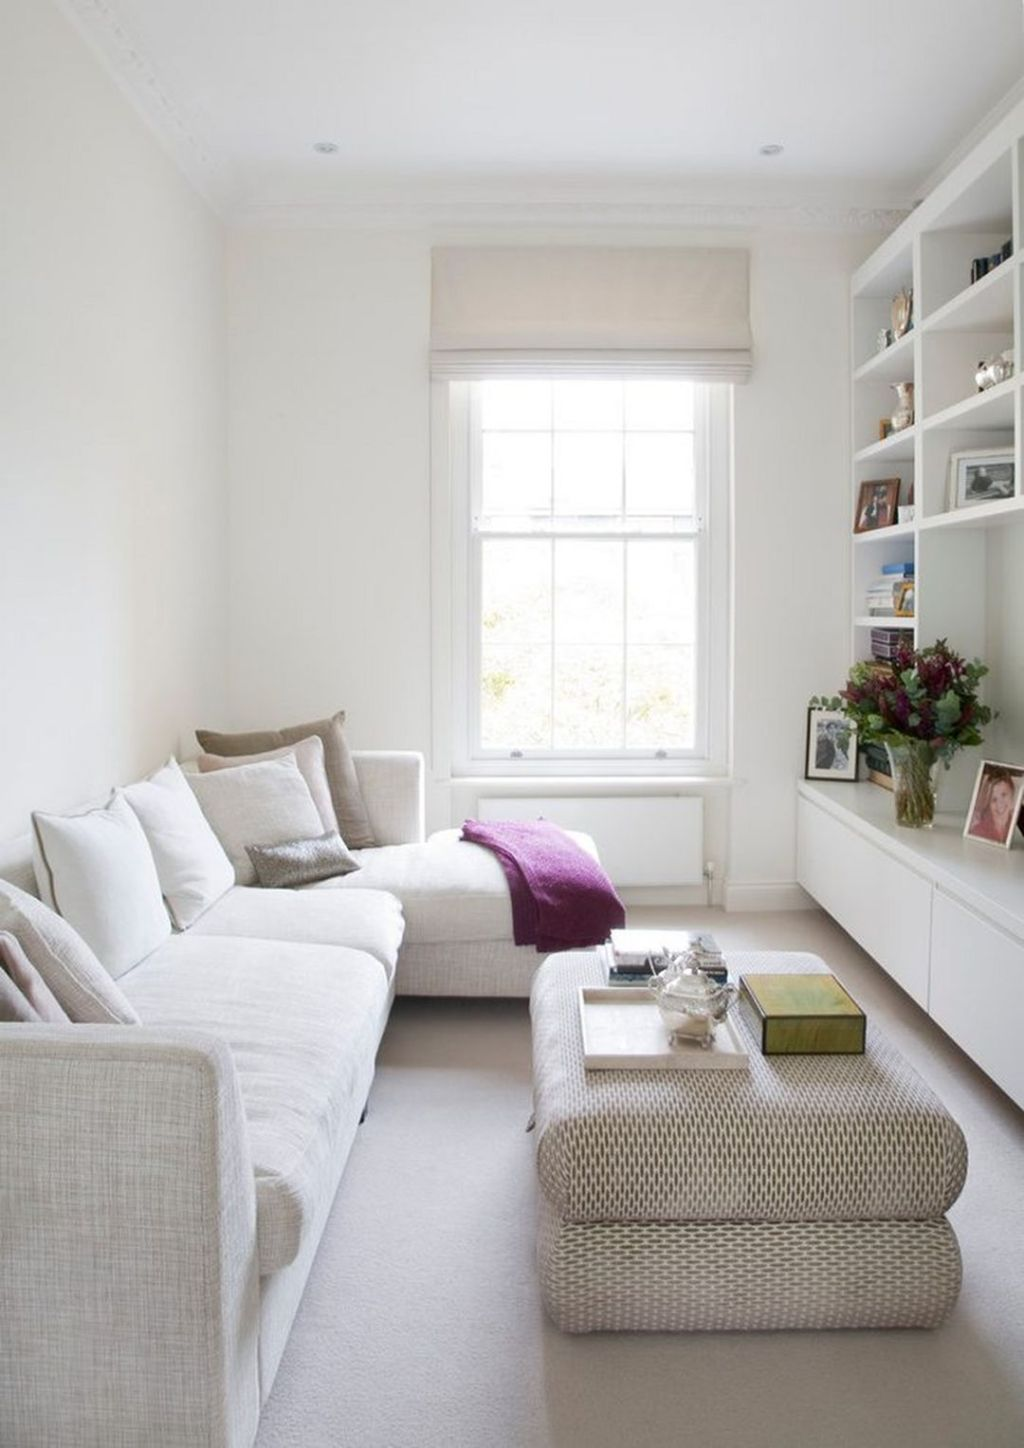 10 Beautiful Living Room Designs For Your Tiny House In